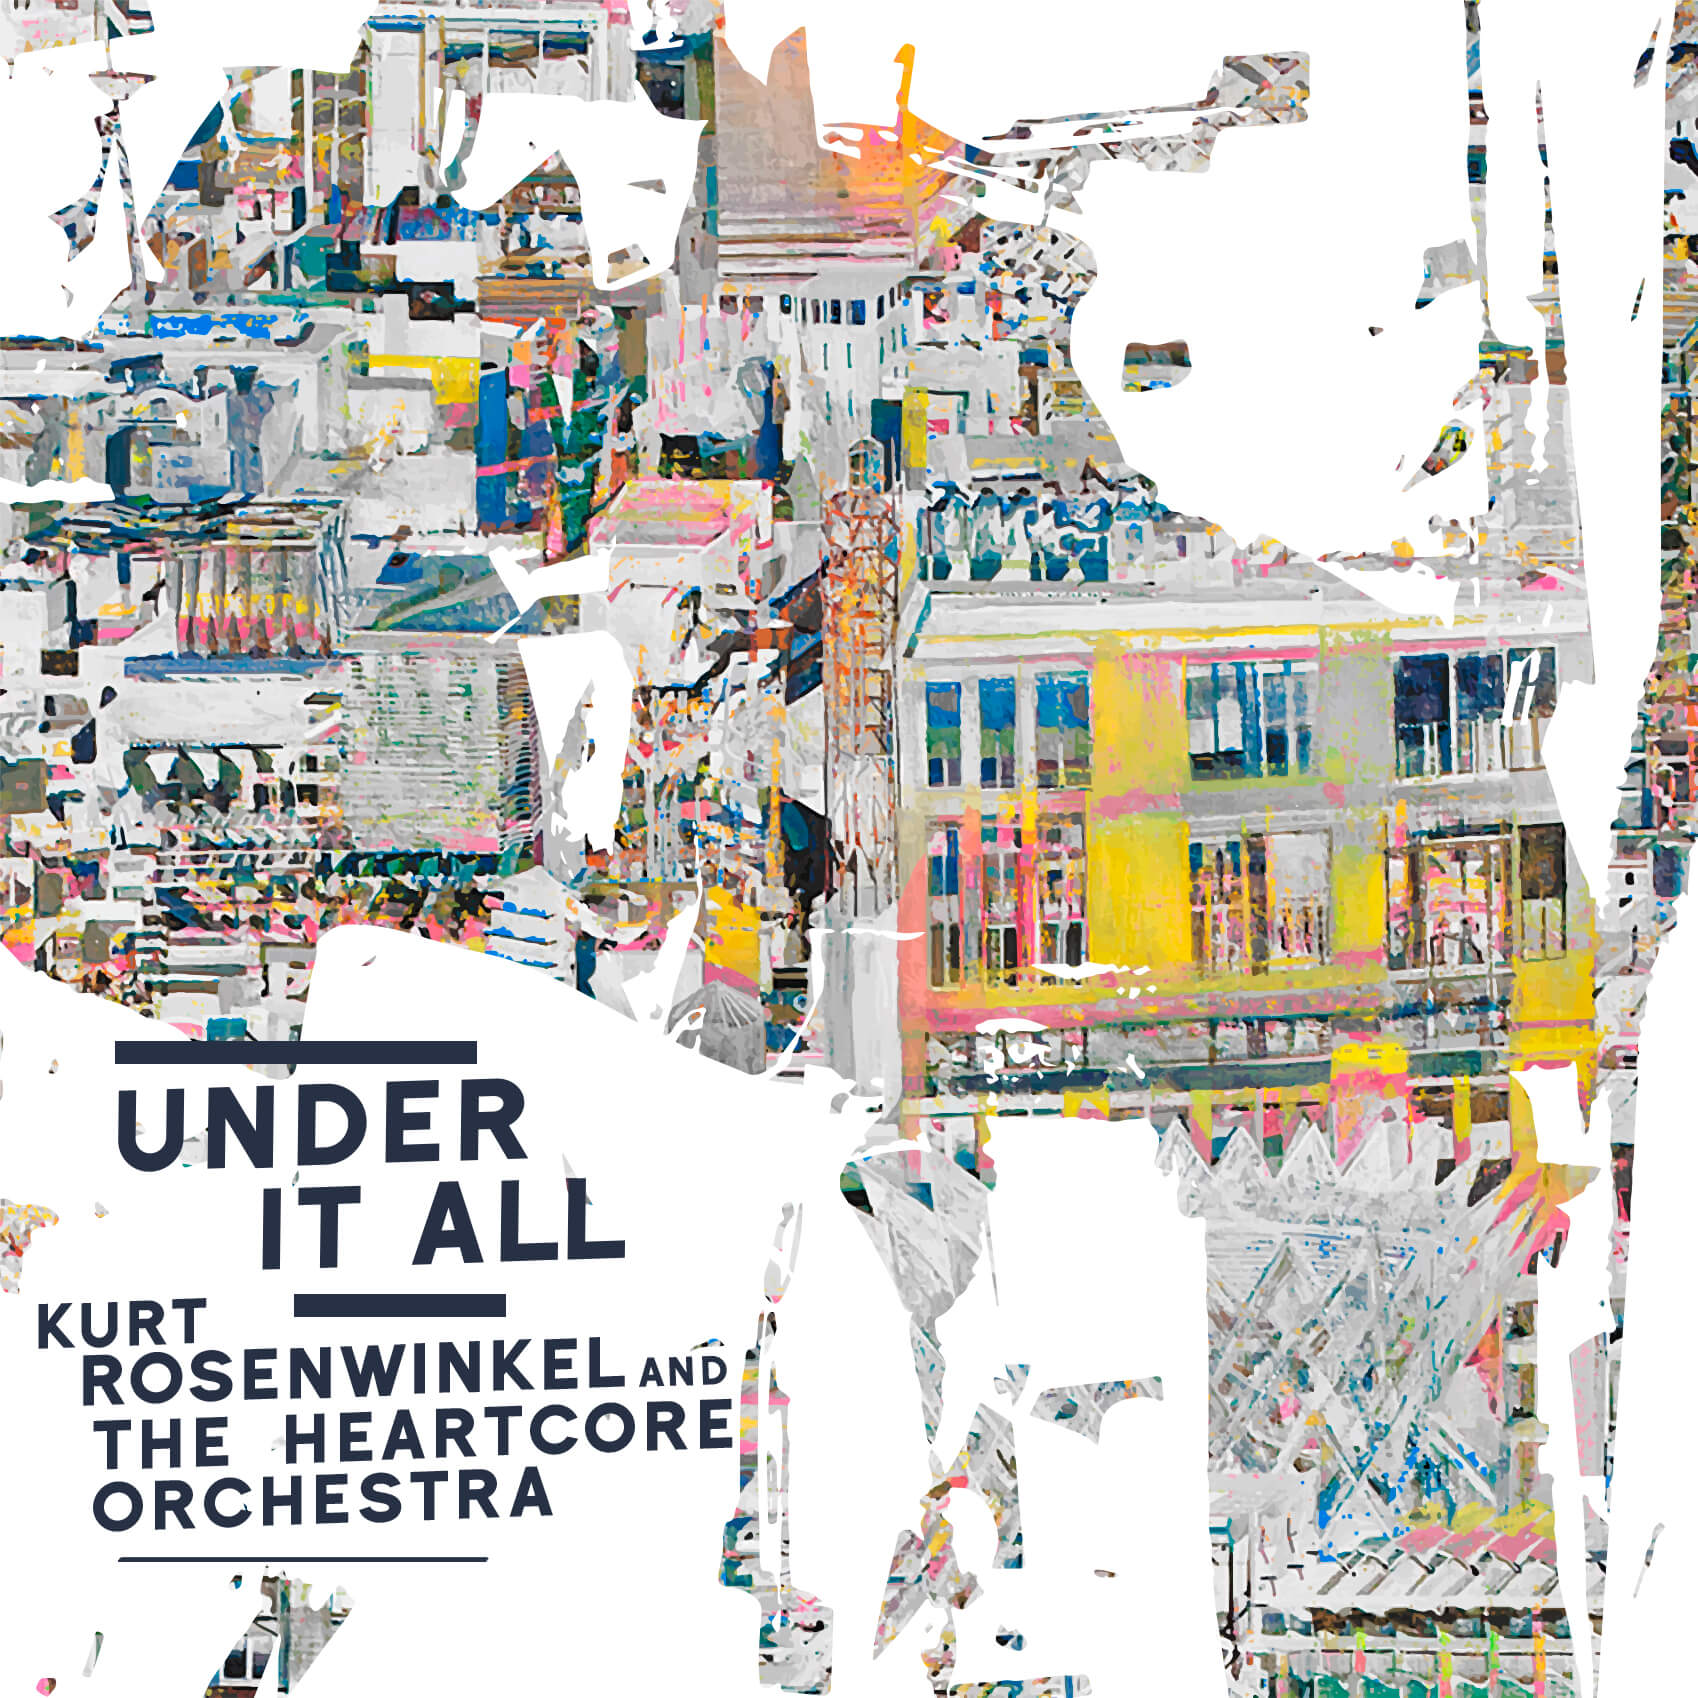 Kurt Rosenwinkel and The Heartcore Orchestra - Under It All